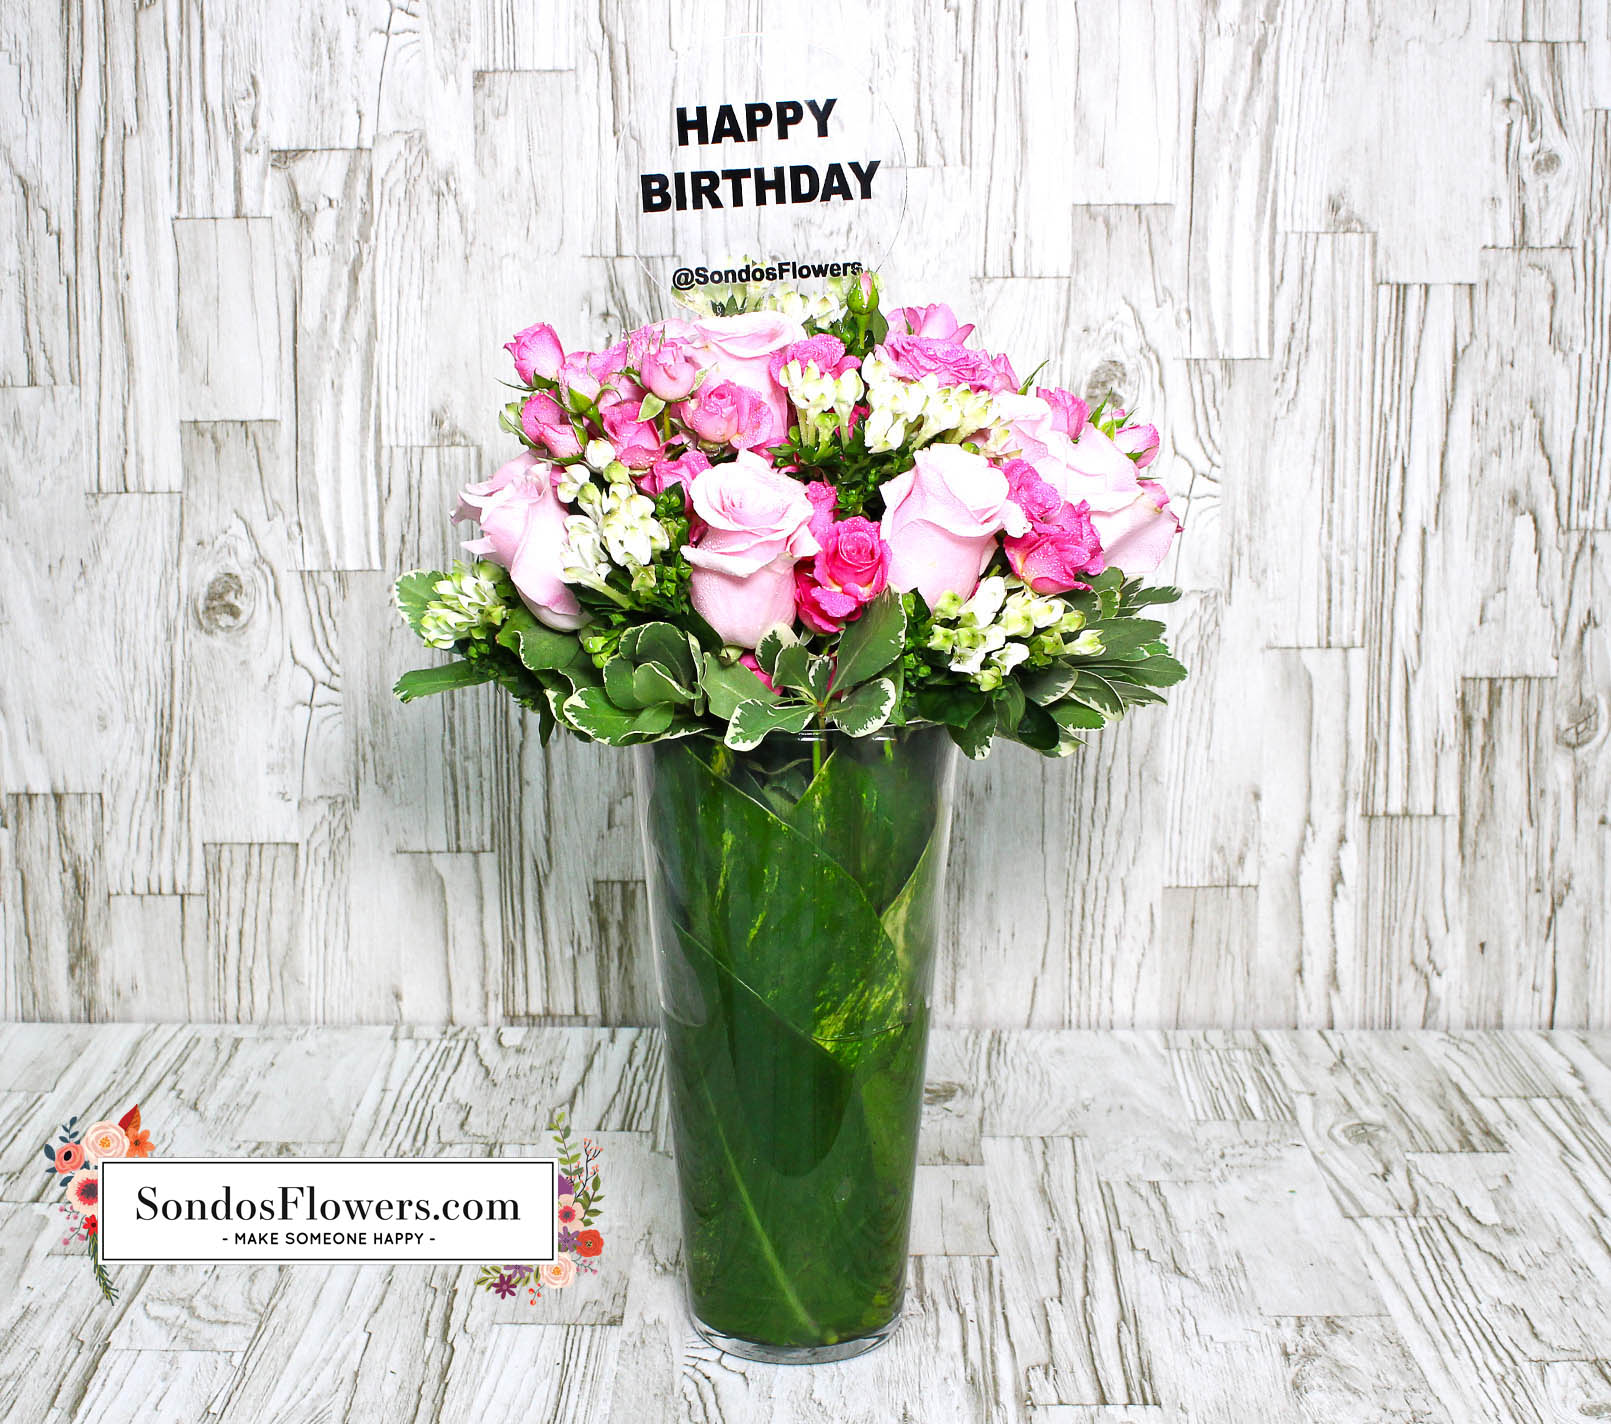 Fairytale happy birthday send fresh flowers gifts online kuwait fairytale happy birthday izmirmasajfo